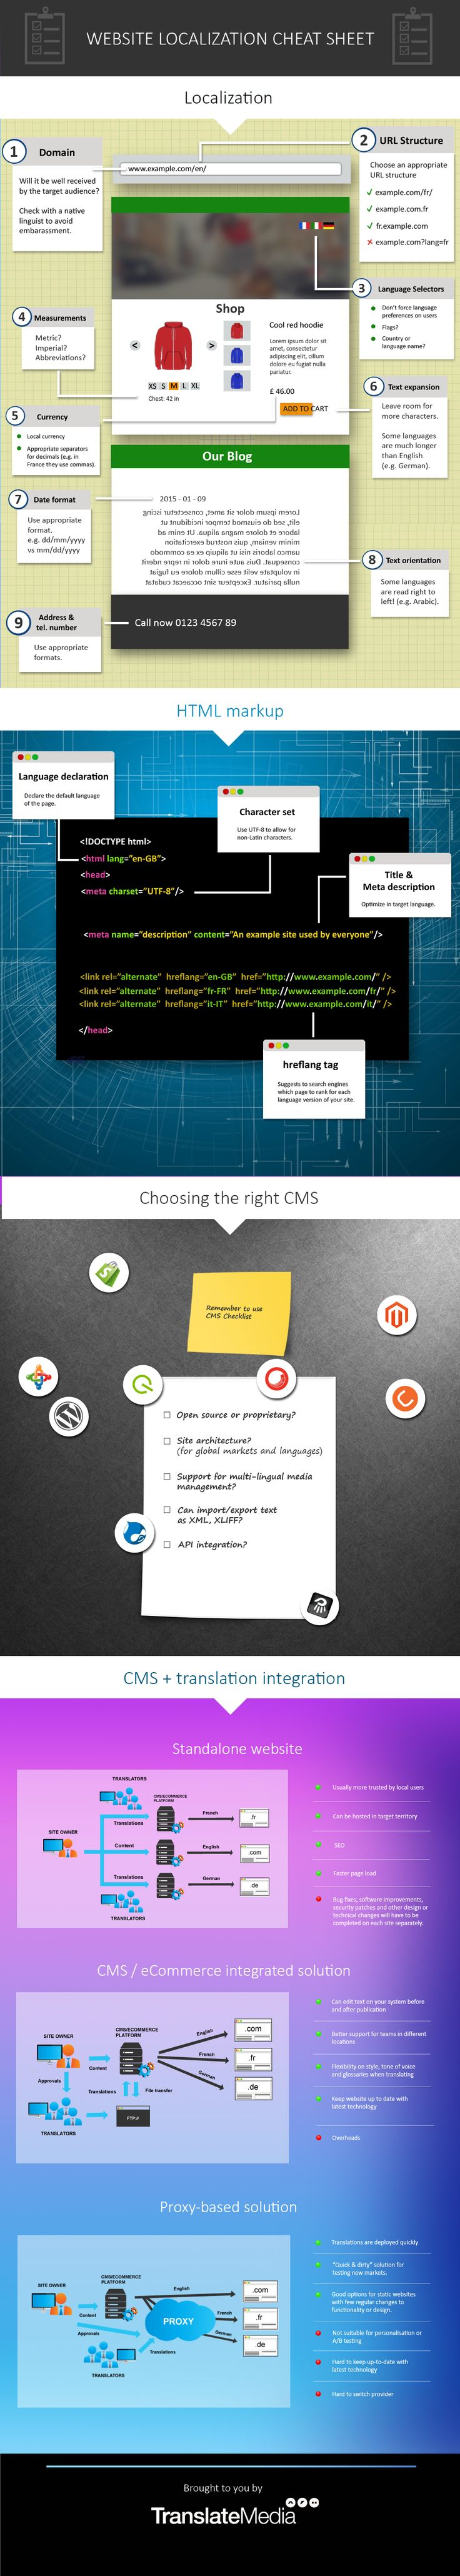 Planning Your Localization Project #Infographic #Website #WebDesign